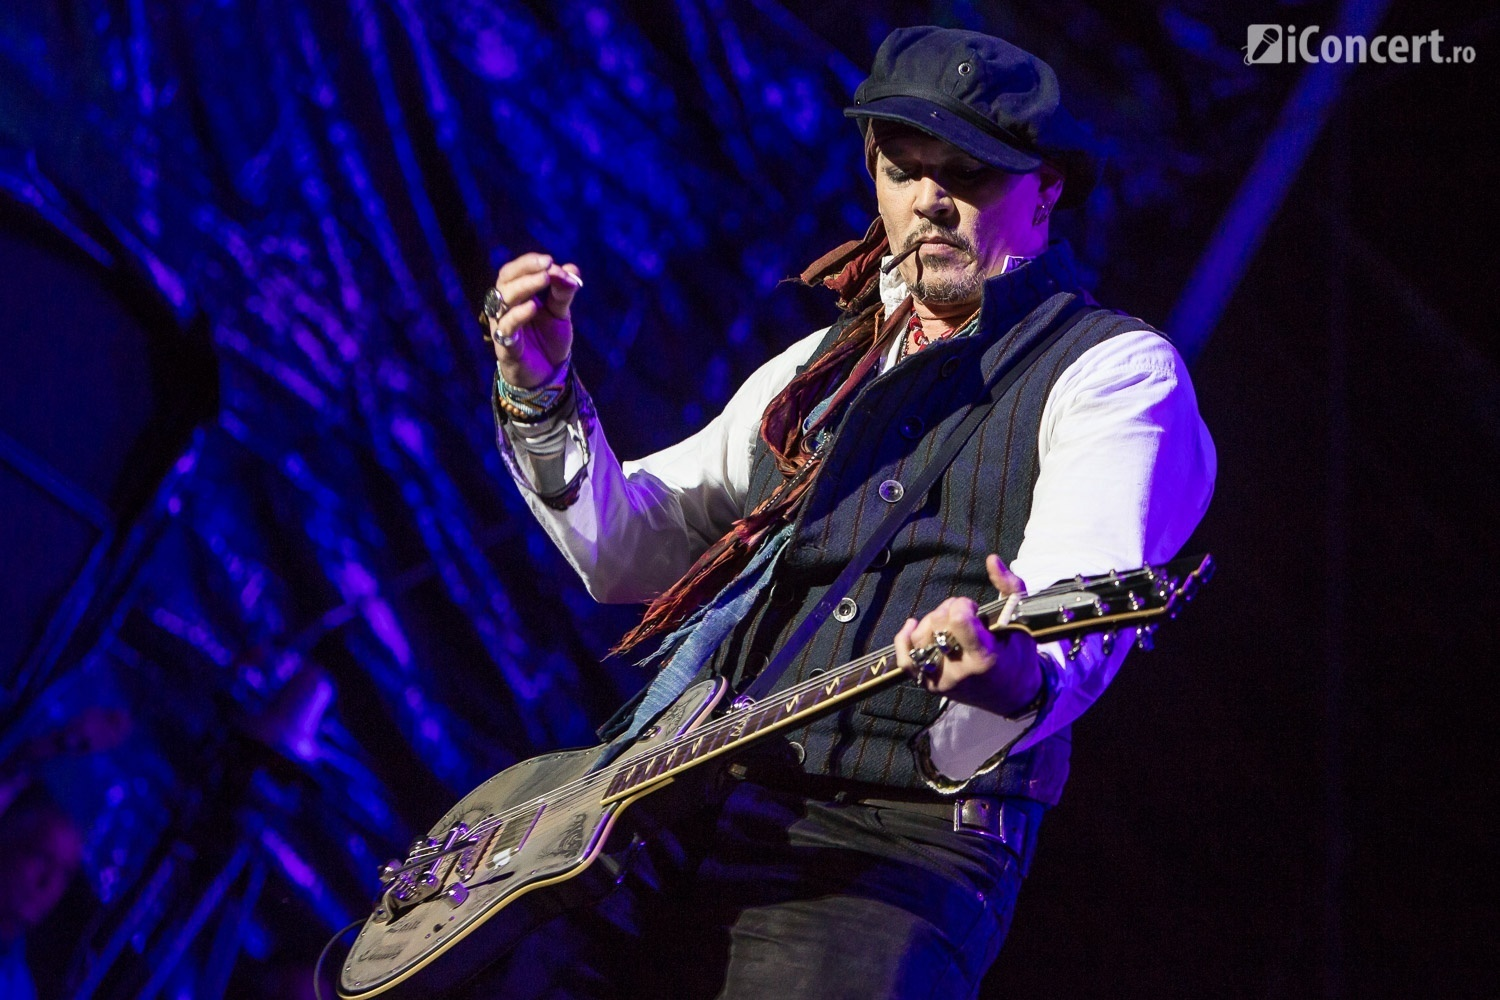 Johnny Depp - The Hollywood Vampires în concert la Bucureşti - Foto: Paul Voicu / iConcert.ro